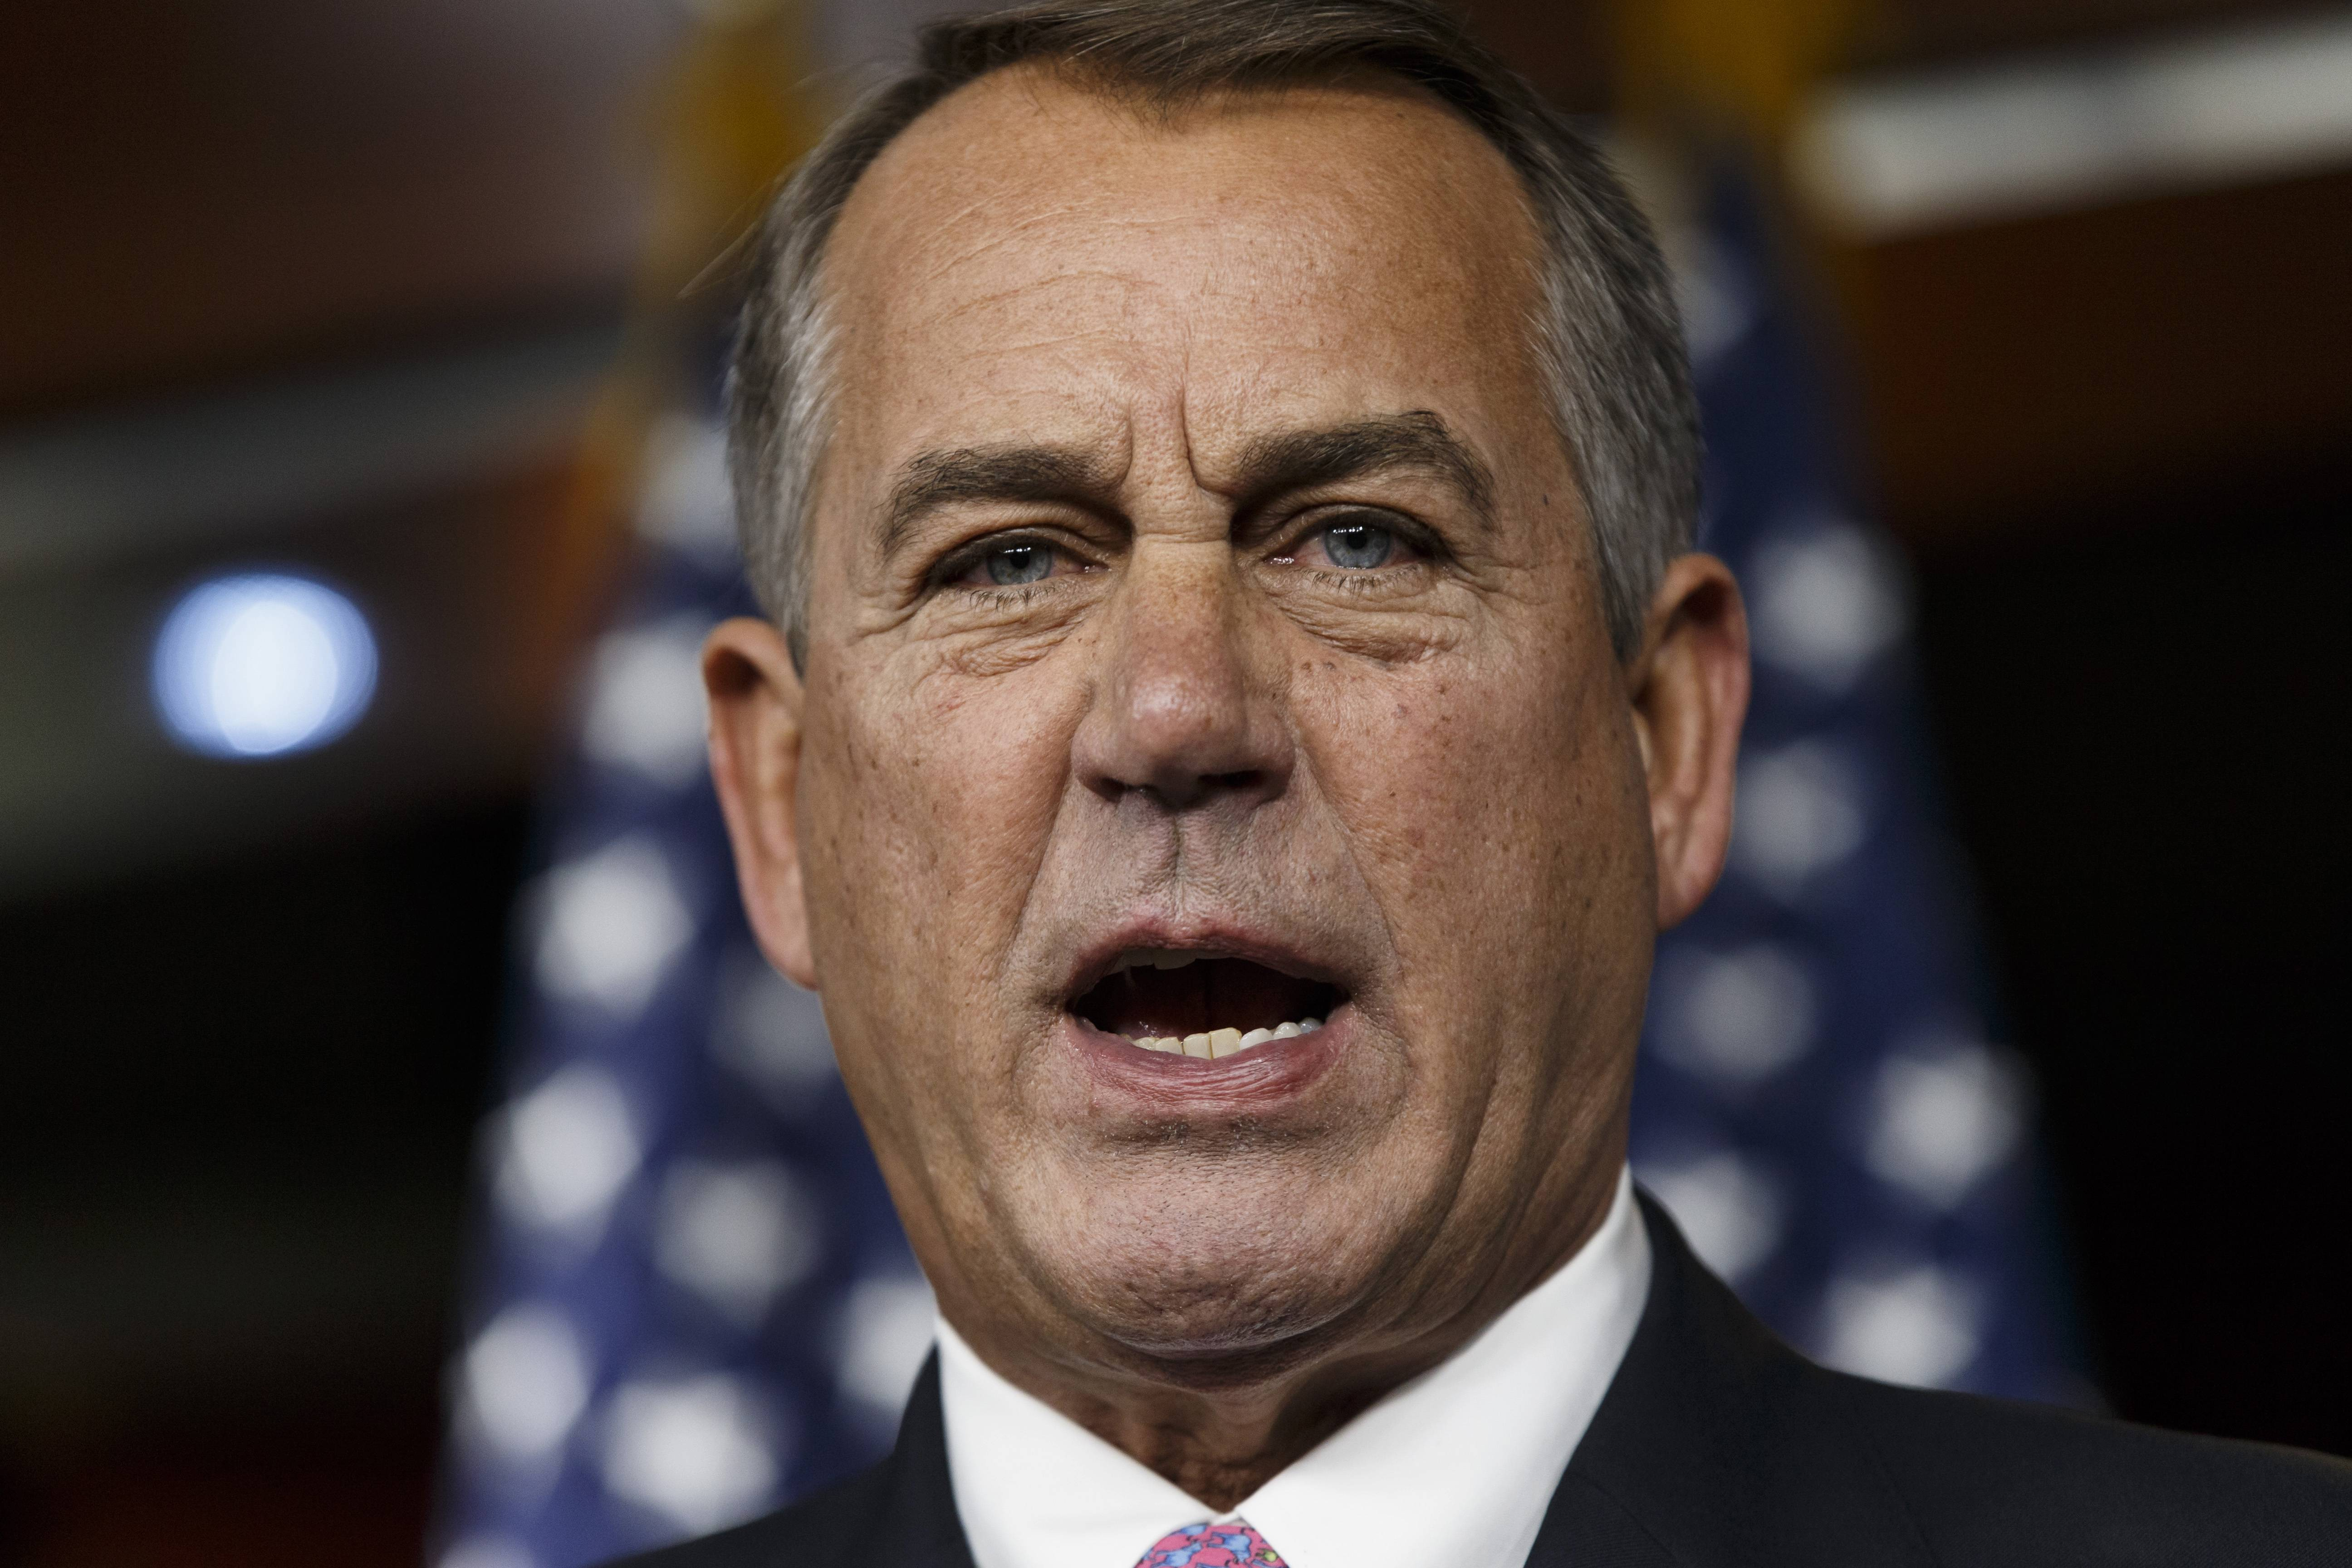 Unwilling to risk spooking the markets, and leading a fractured GOP majority, House Speaker John Boehner on Tuesday stepped back from a confrontation with Democrats to let Congress vote on increasing the government's borrowing cap without trying to extract any concessions from the White House. The increase passed 221-201.